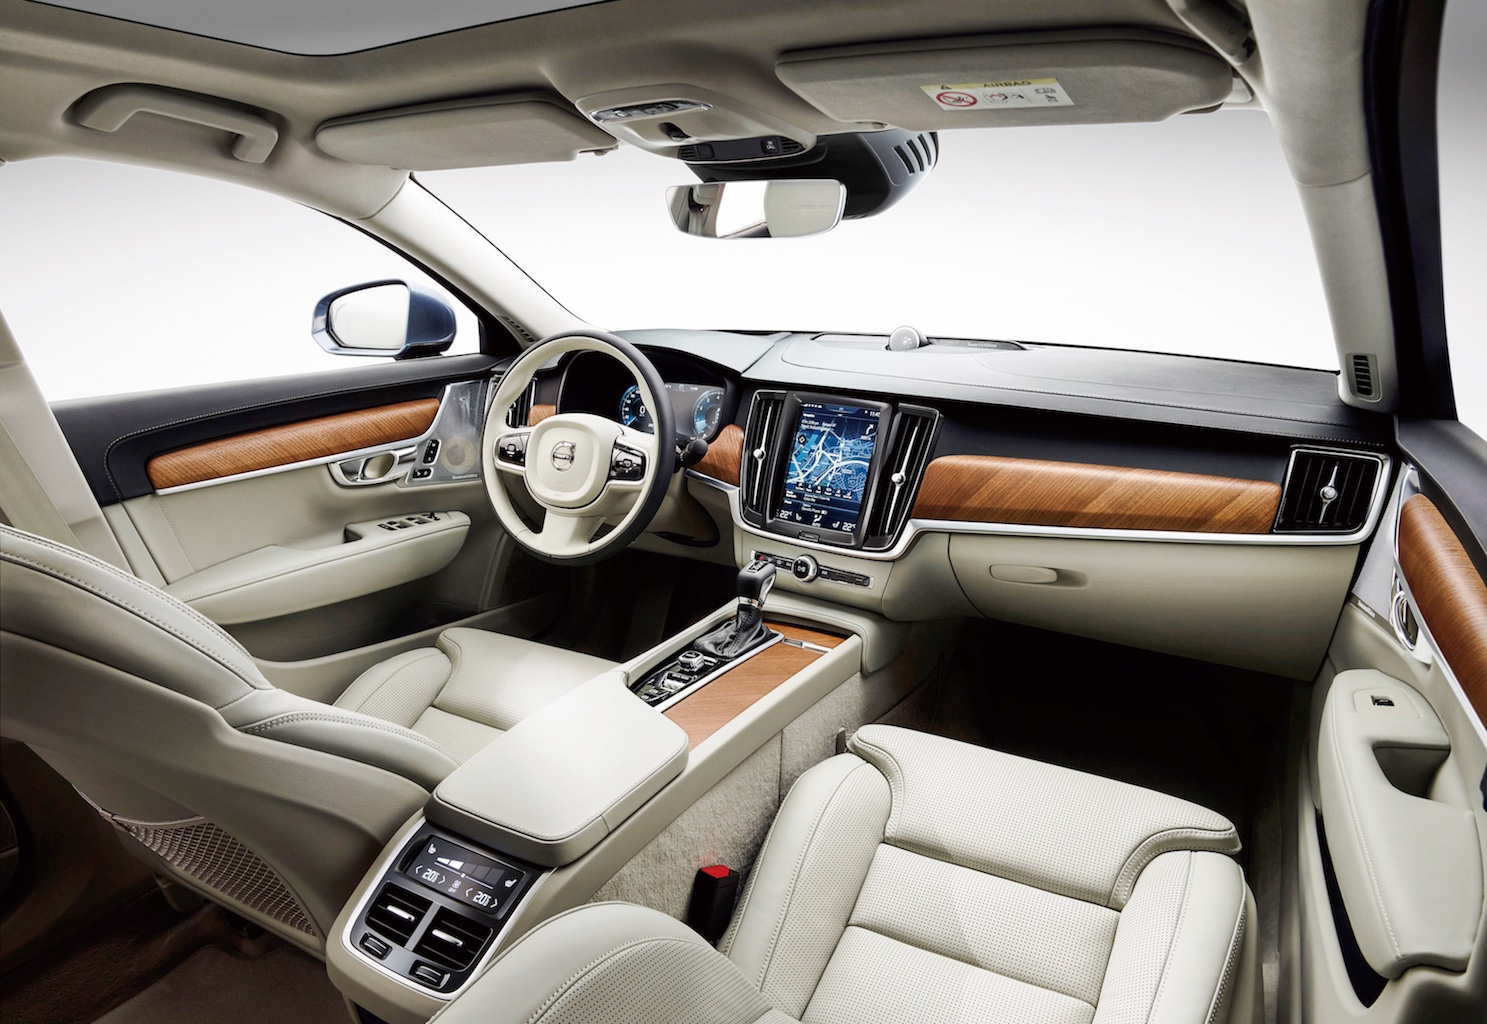 Interior cockpit Volvo S90 blond